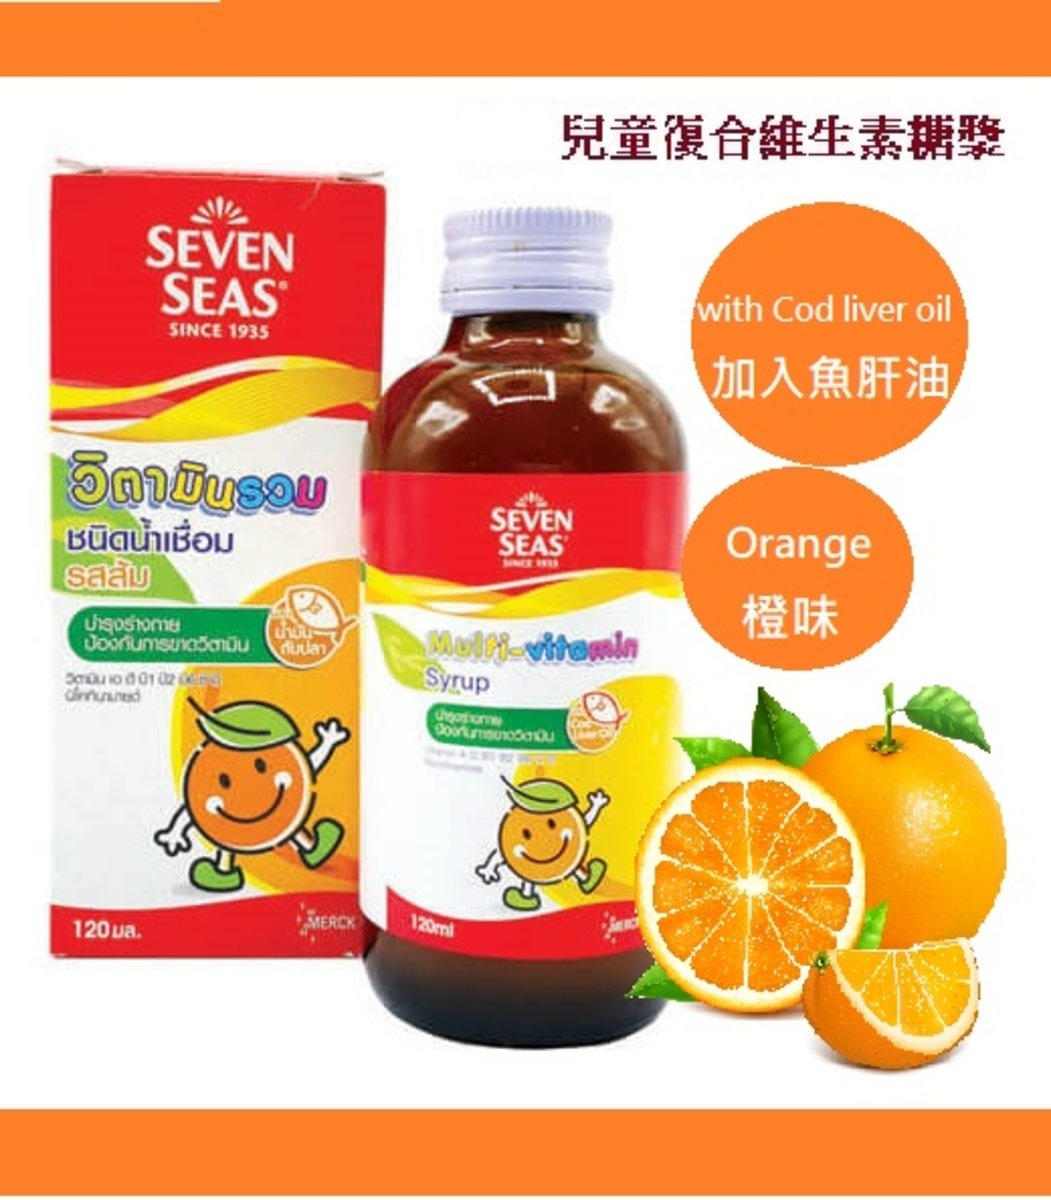 Multivitamin syrup for kids 120ml (Parallel Import)